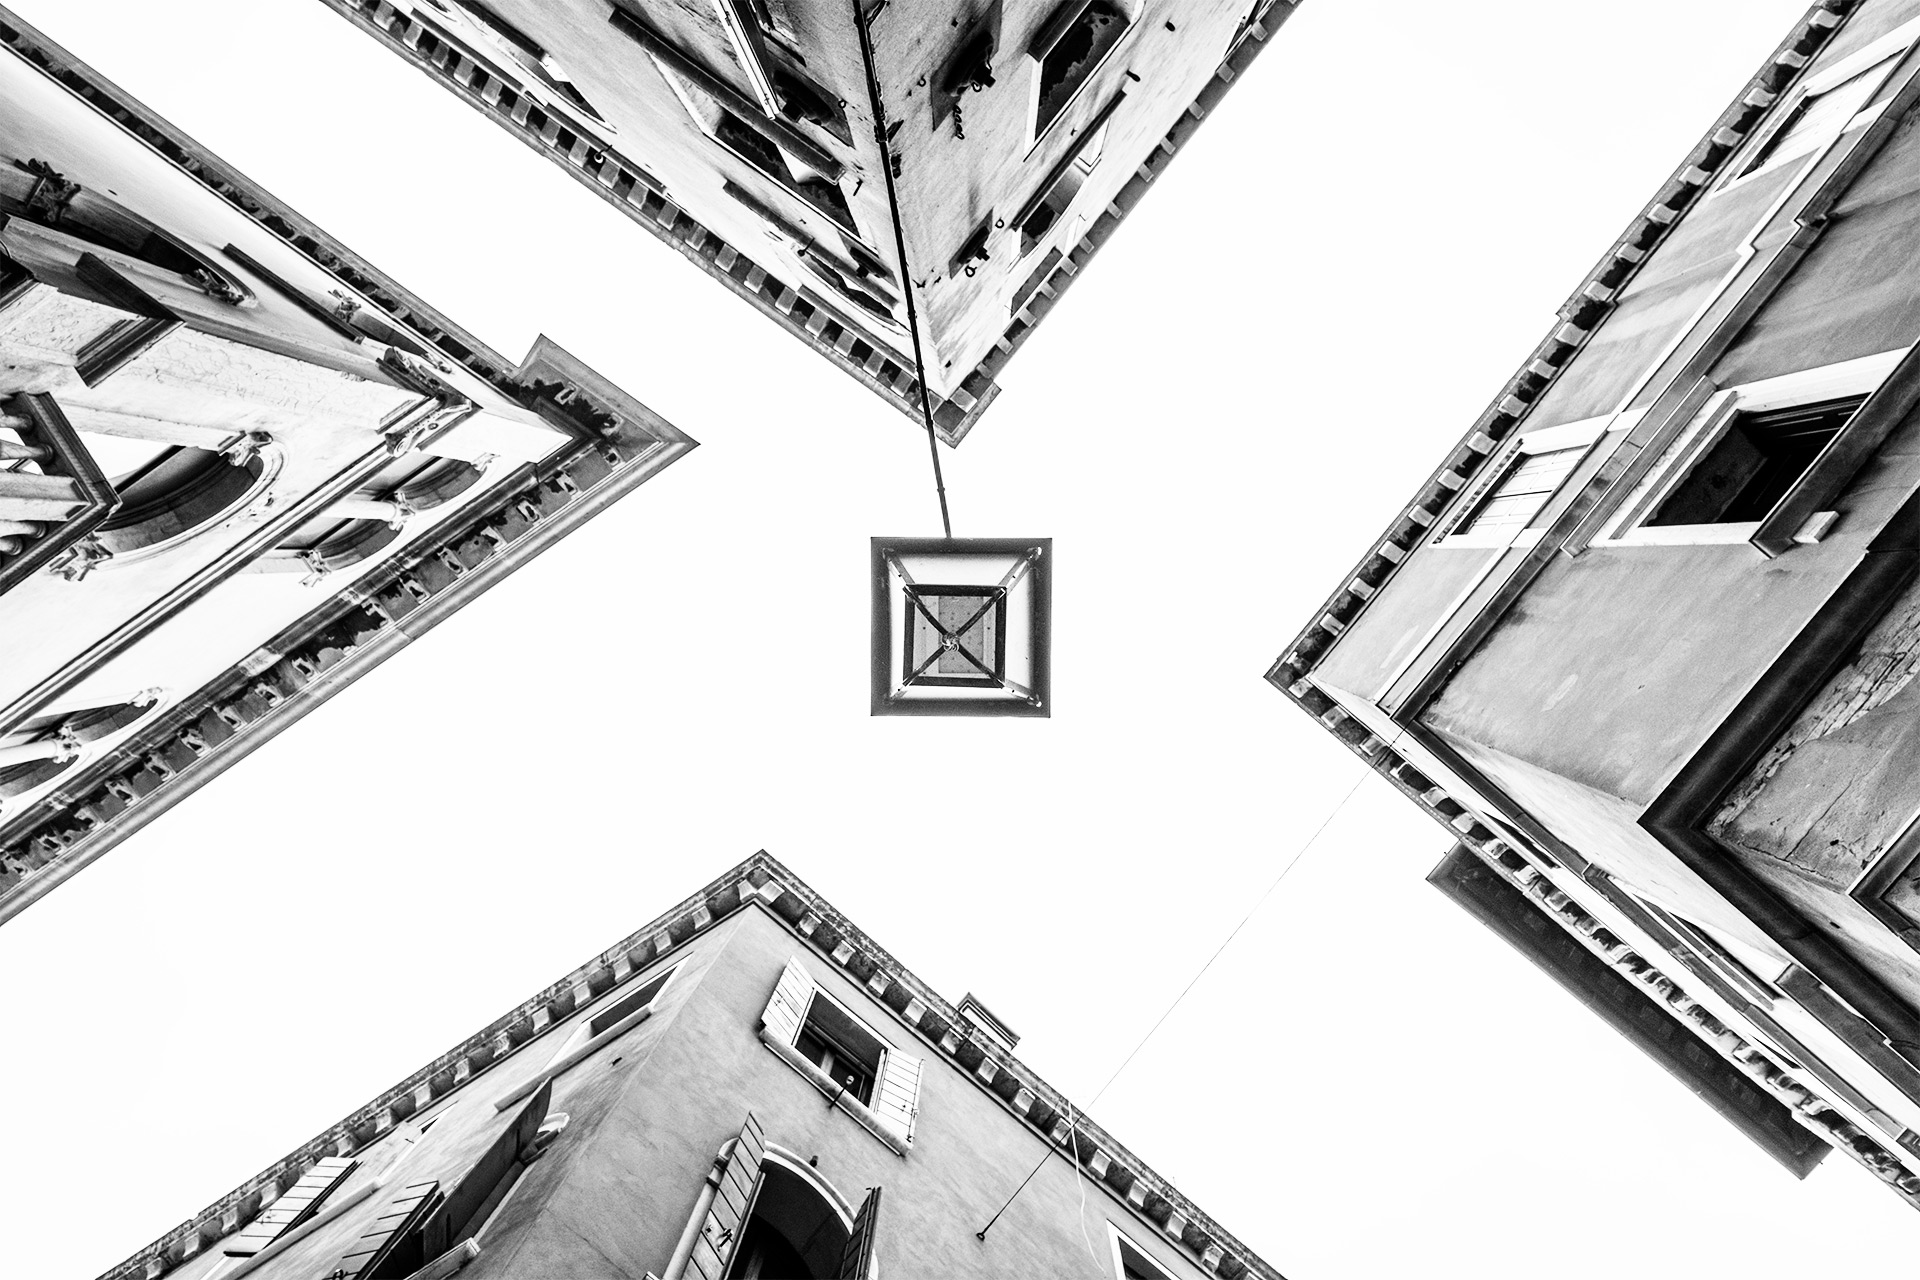 Composition 101 / Show the Original, Photography, Fujinon XF 16-55mm f/2.8, Fujifilm X-T2, Black & White, Architectural Photography [composition 101 f]